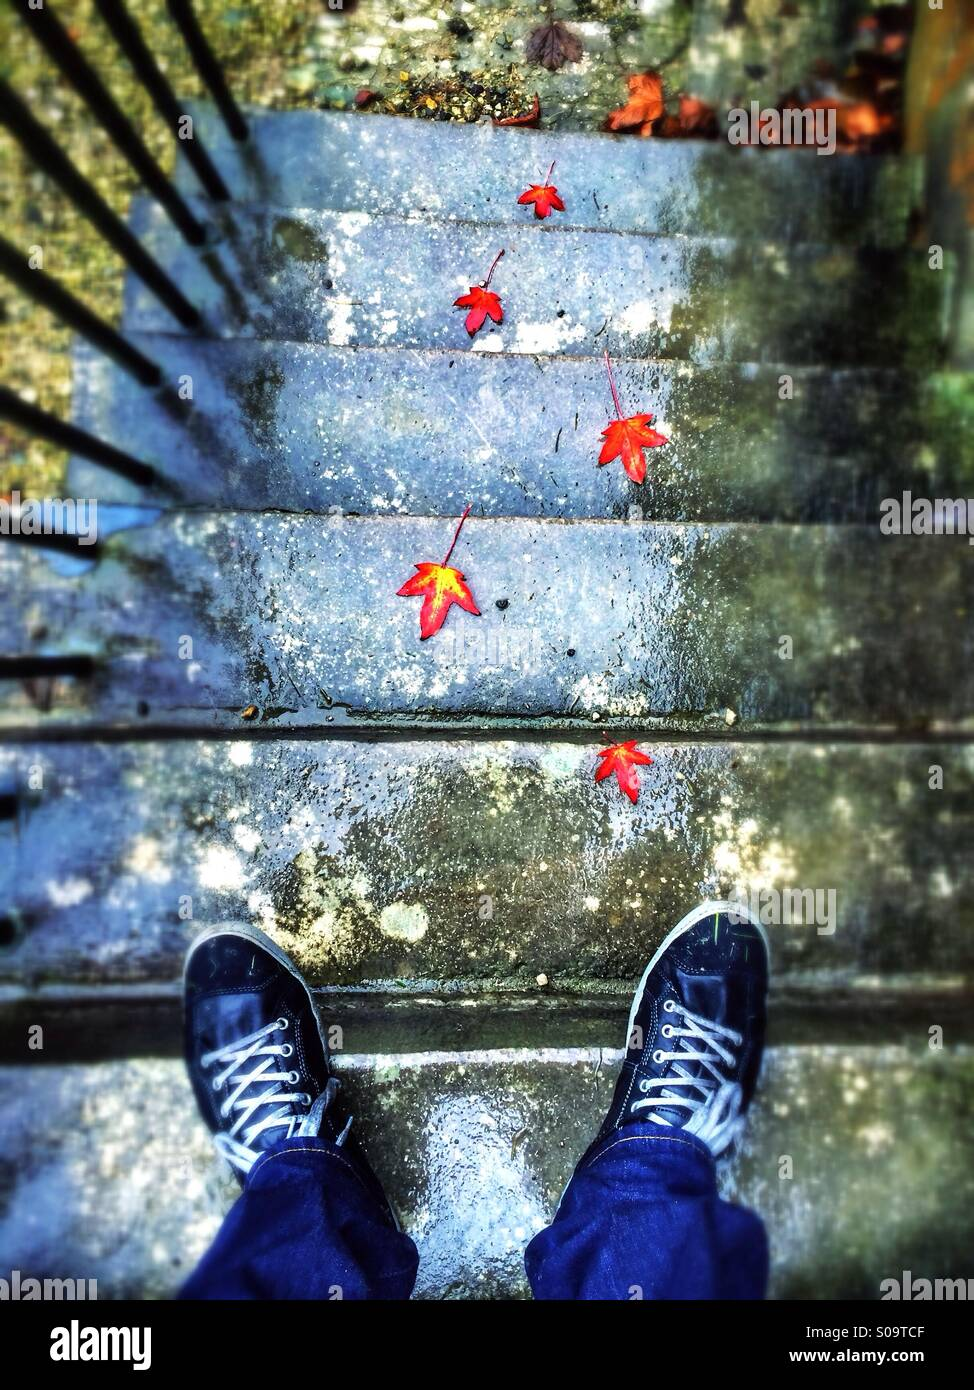 Downward view of a man standing at the top of a set of rain soaked steps, his feet in view. Leading up the steps - Stock Image